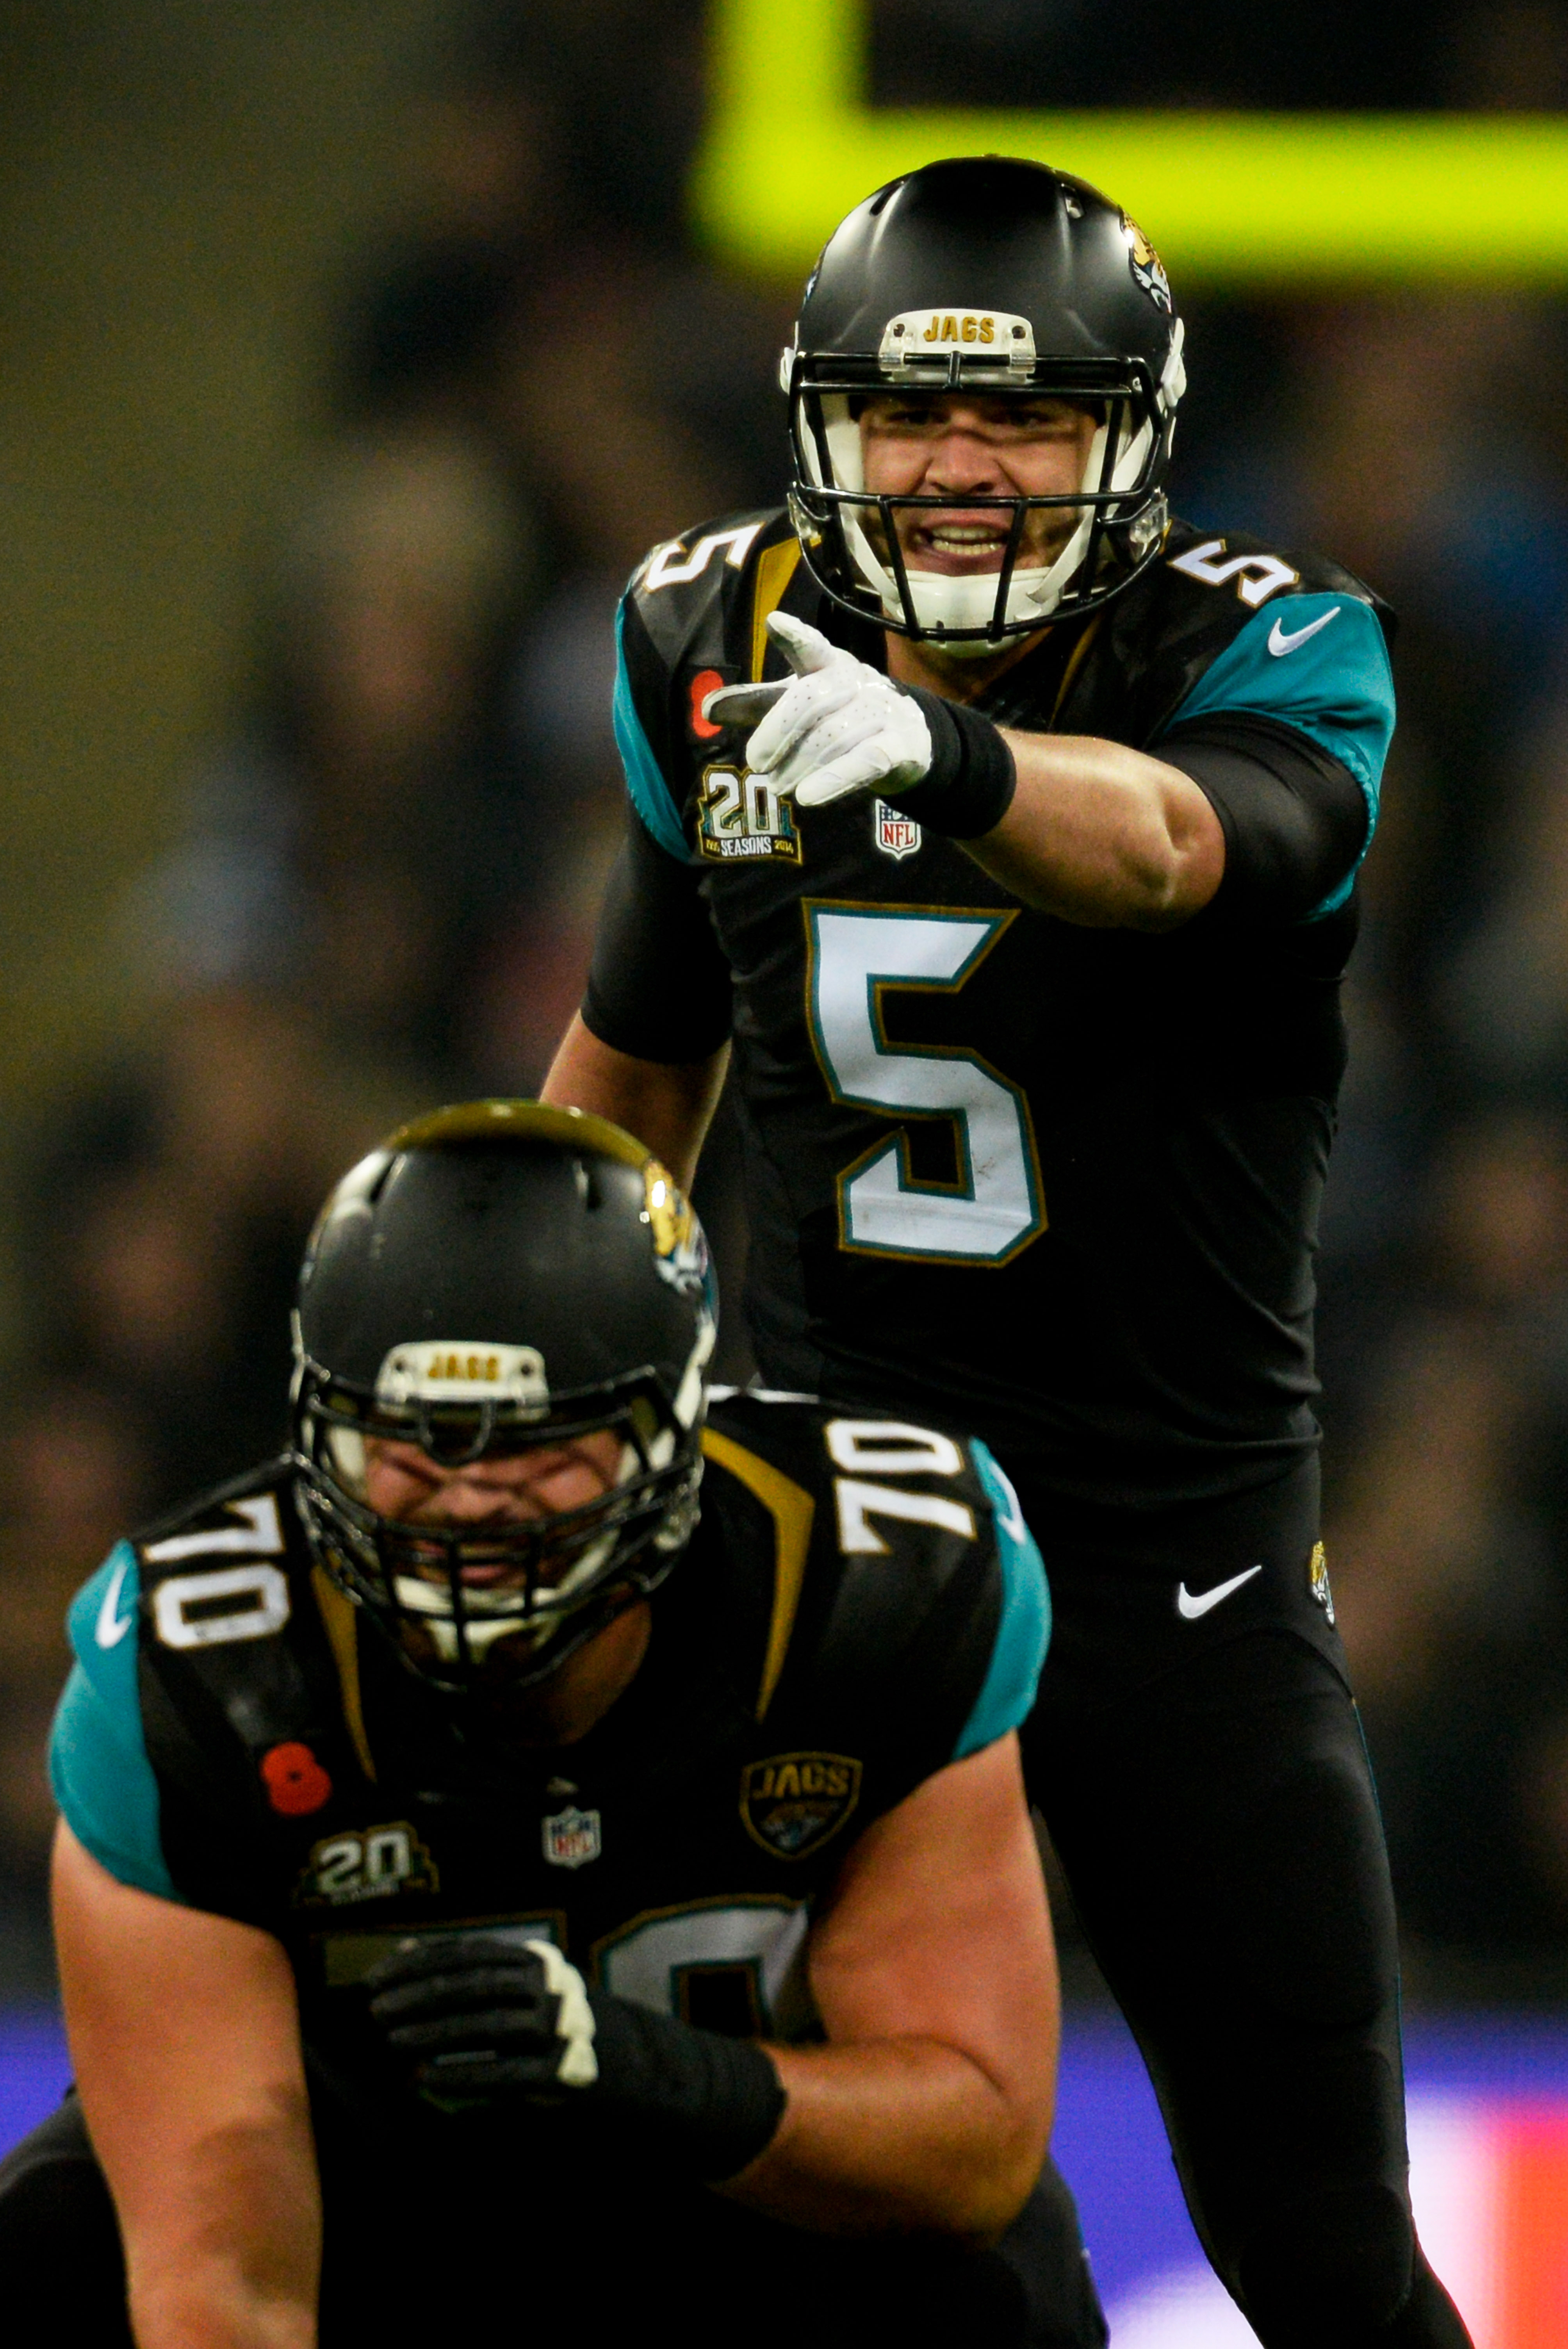 Blake Bortles leads the Jags against the Giants on Sunday